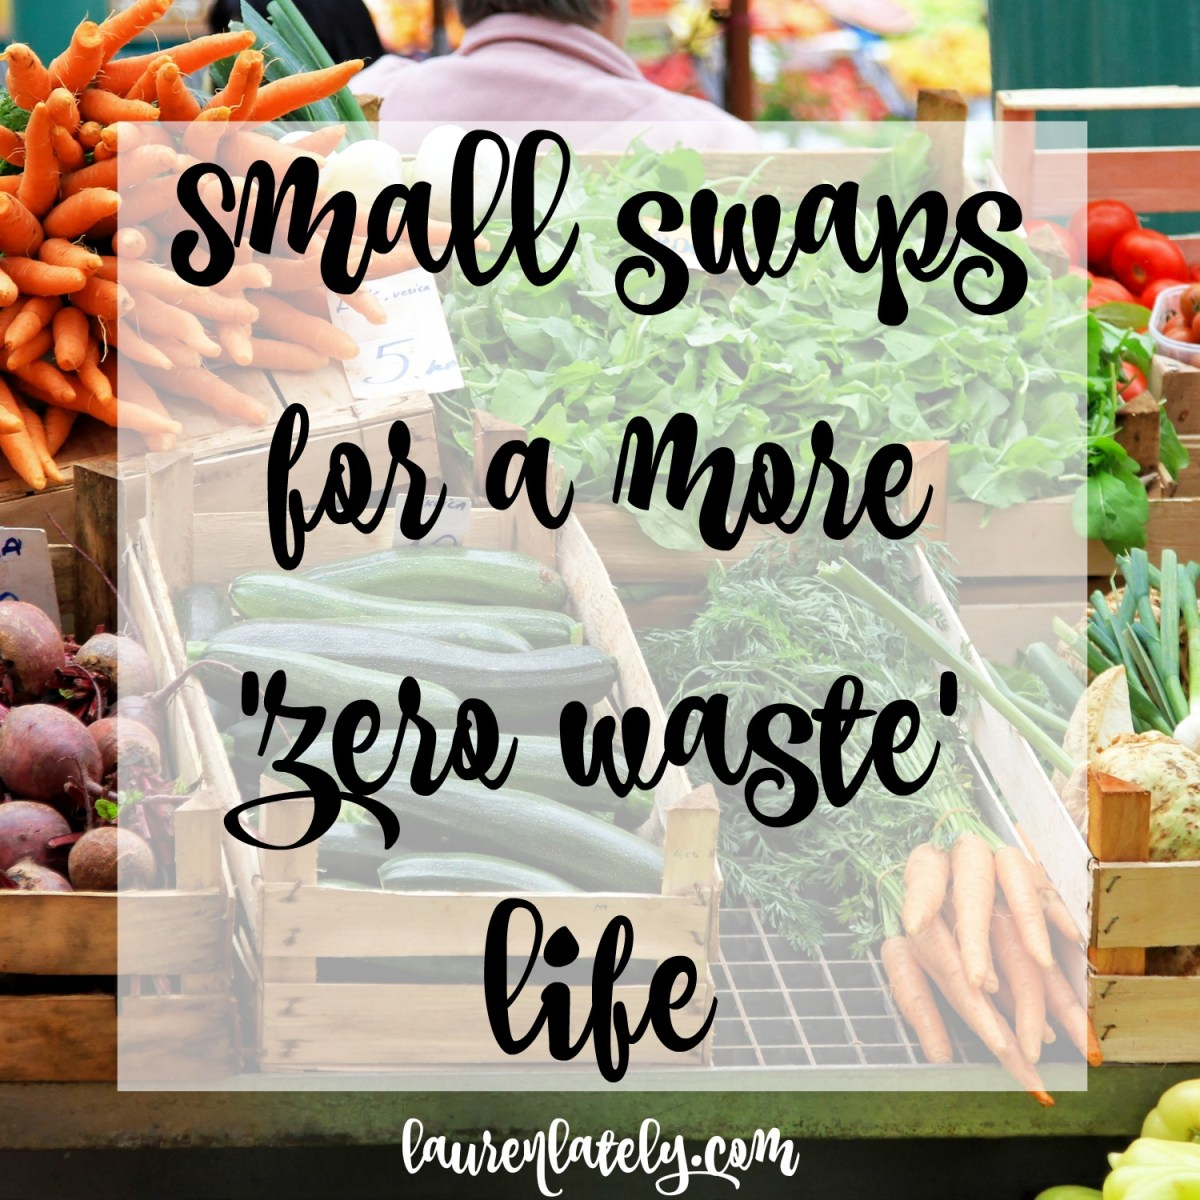 Small swaps for a more 'zero waste' life